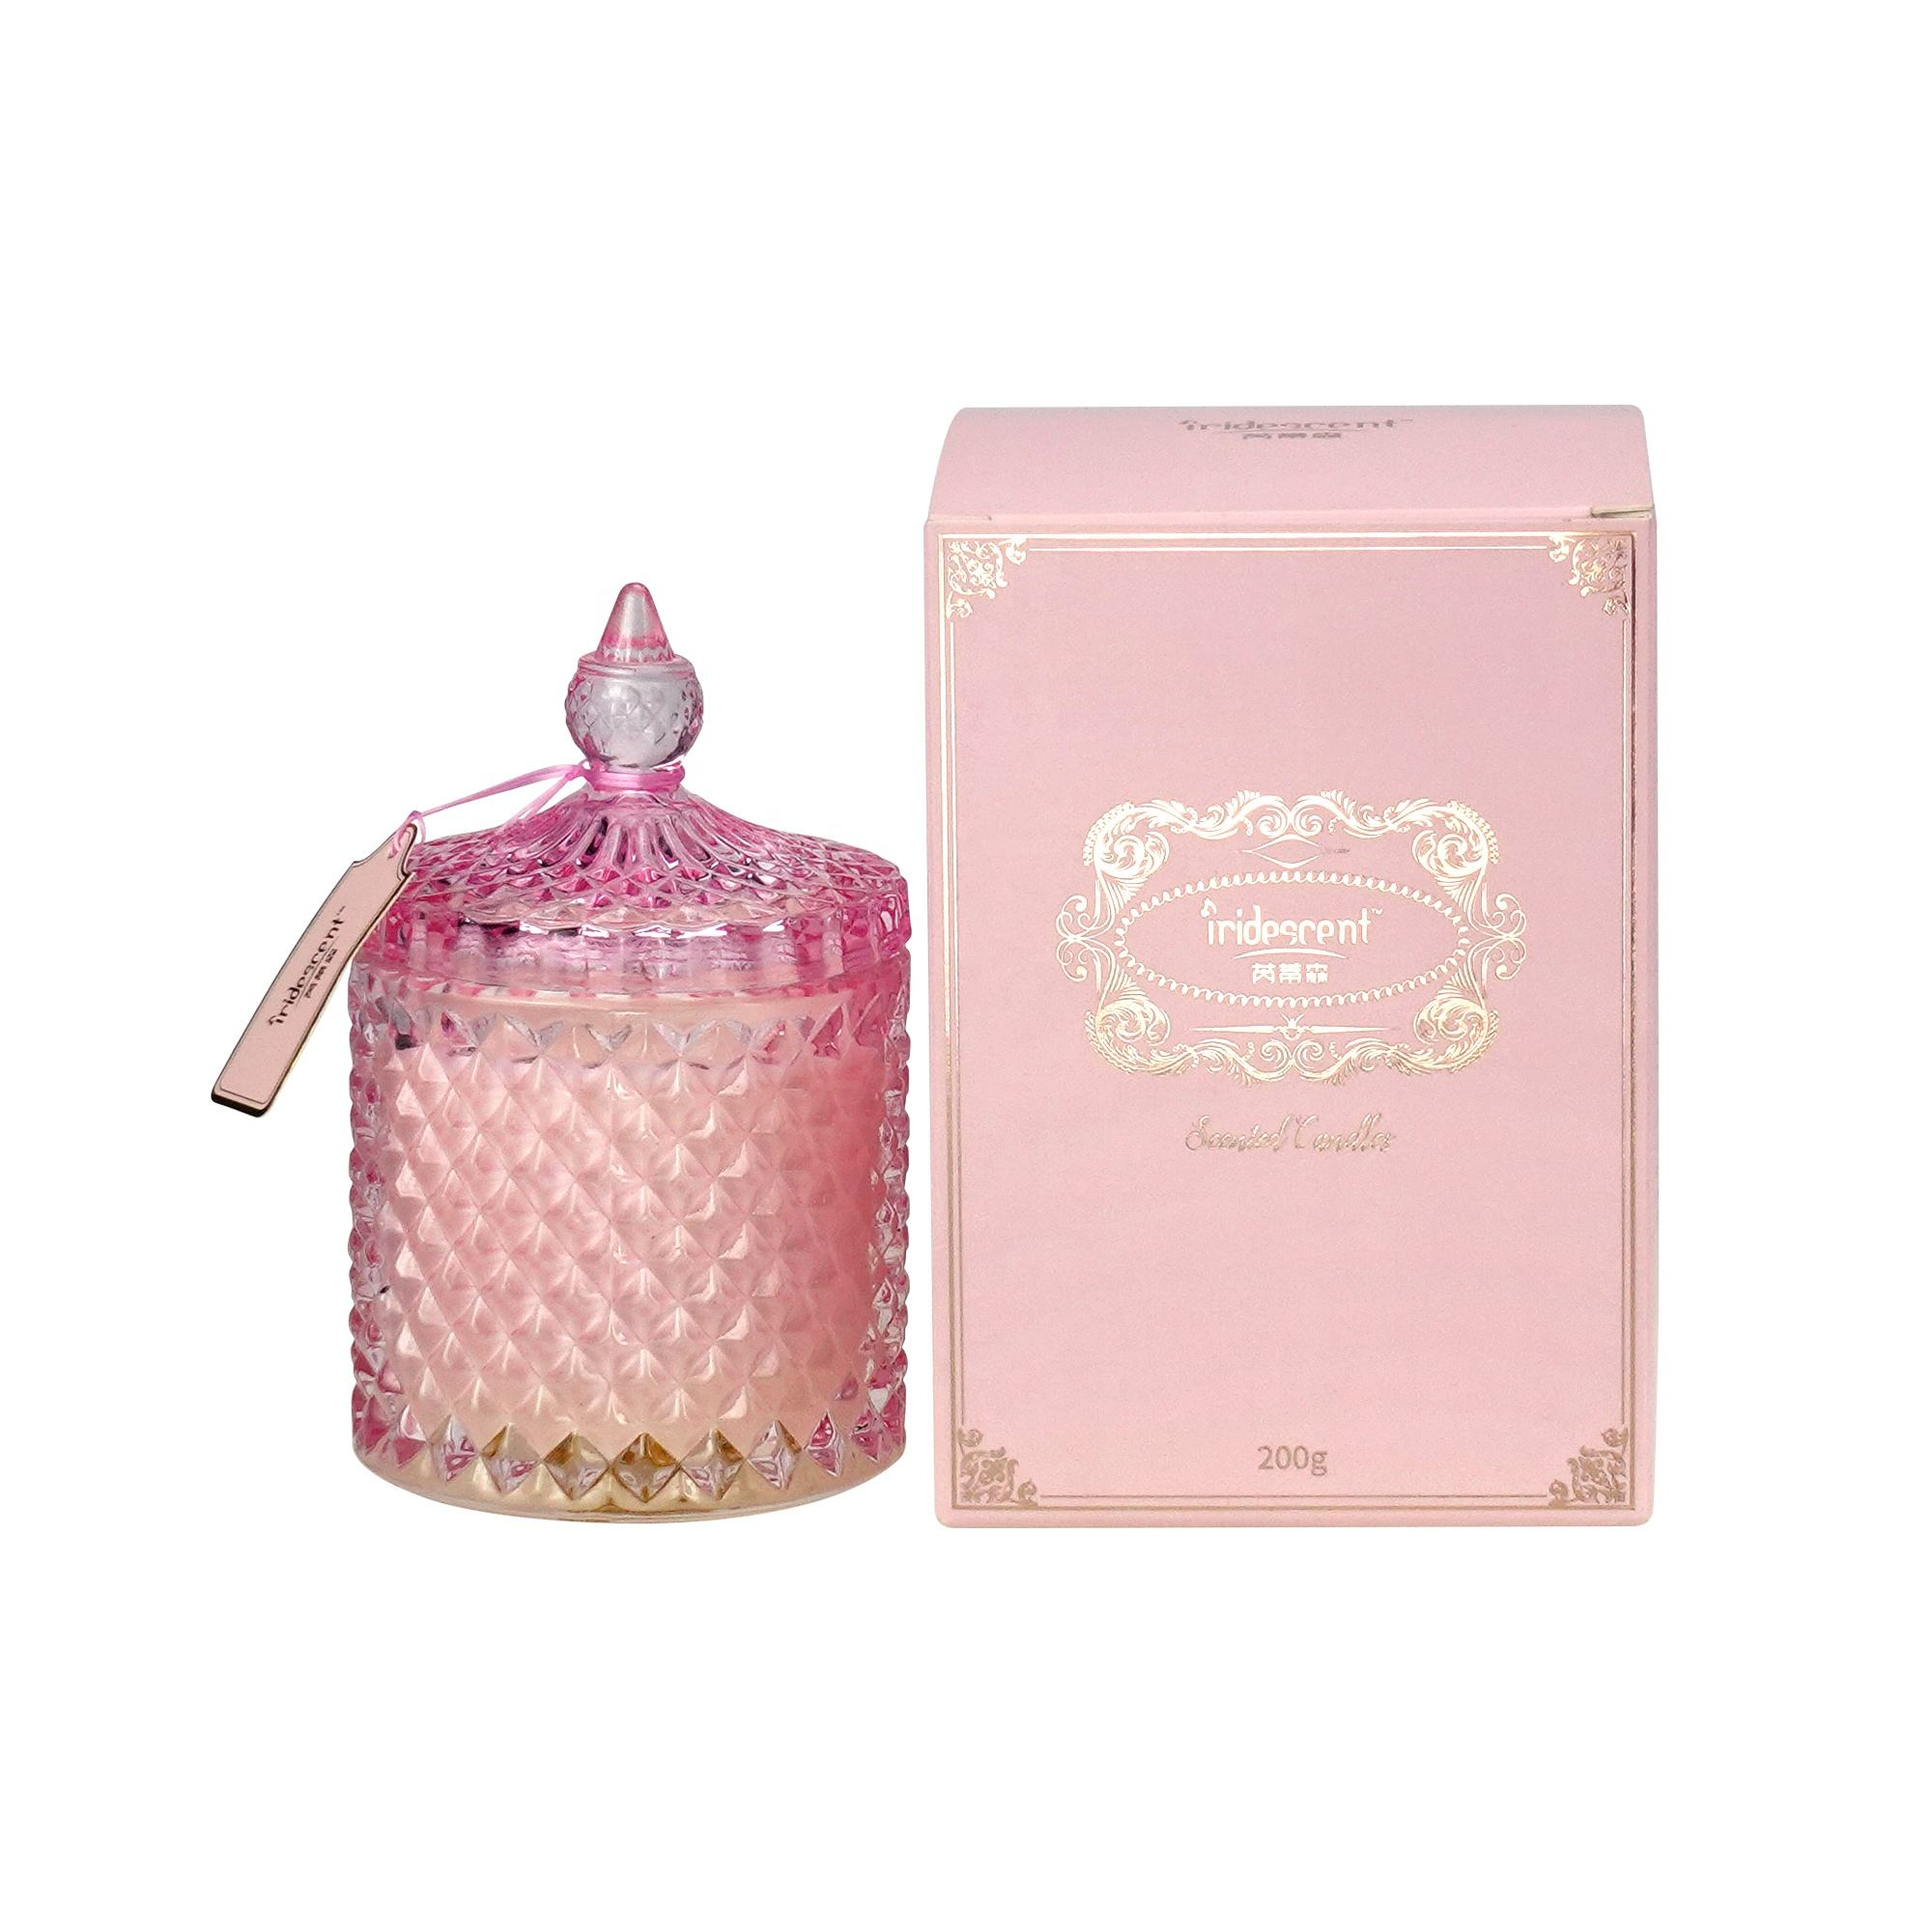 the largest pillar candles beautifully crafted luxury candle done lid pink girlish glass candle